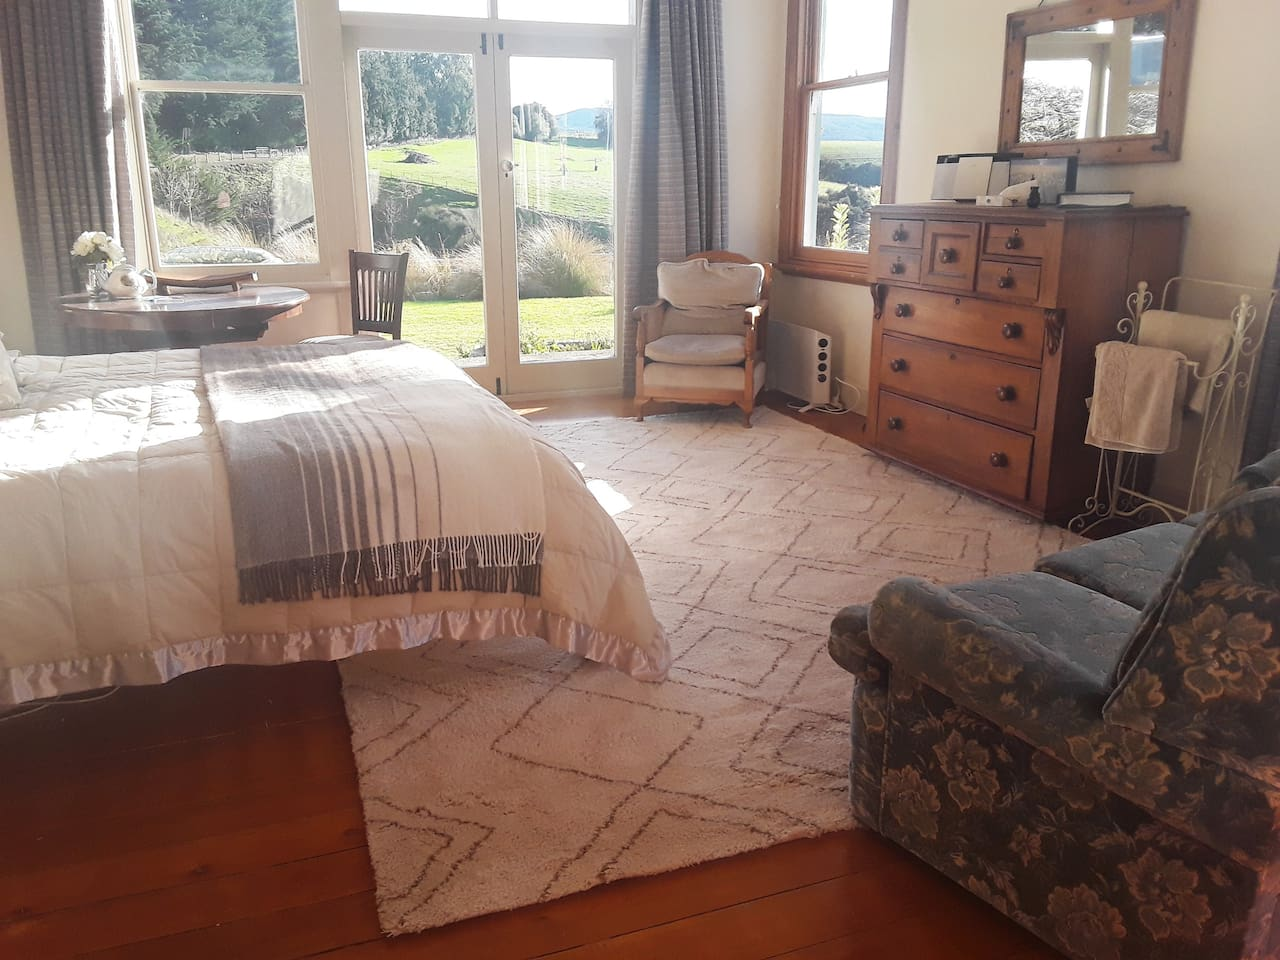 Large private room for a get away for two or the family. Enjoy a lovely woollen rug under your feet whilst relaxing in this sunny room or on the patio enjoying farm vistas.